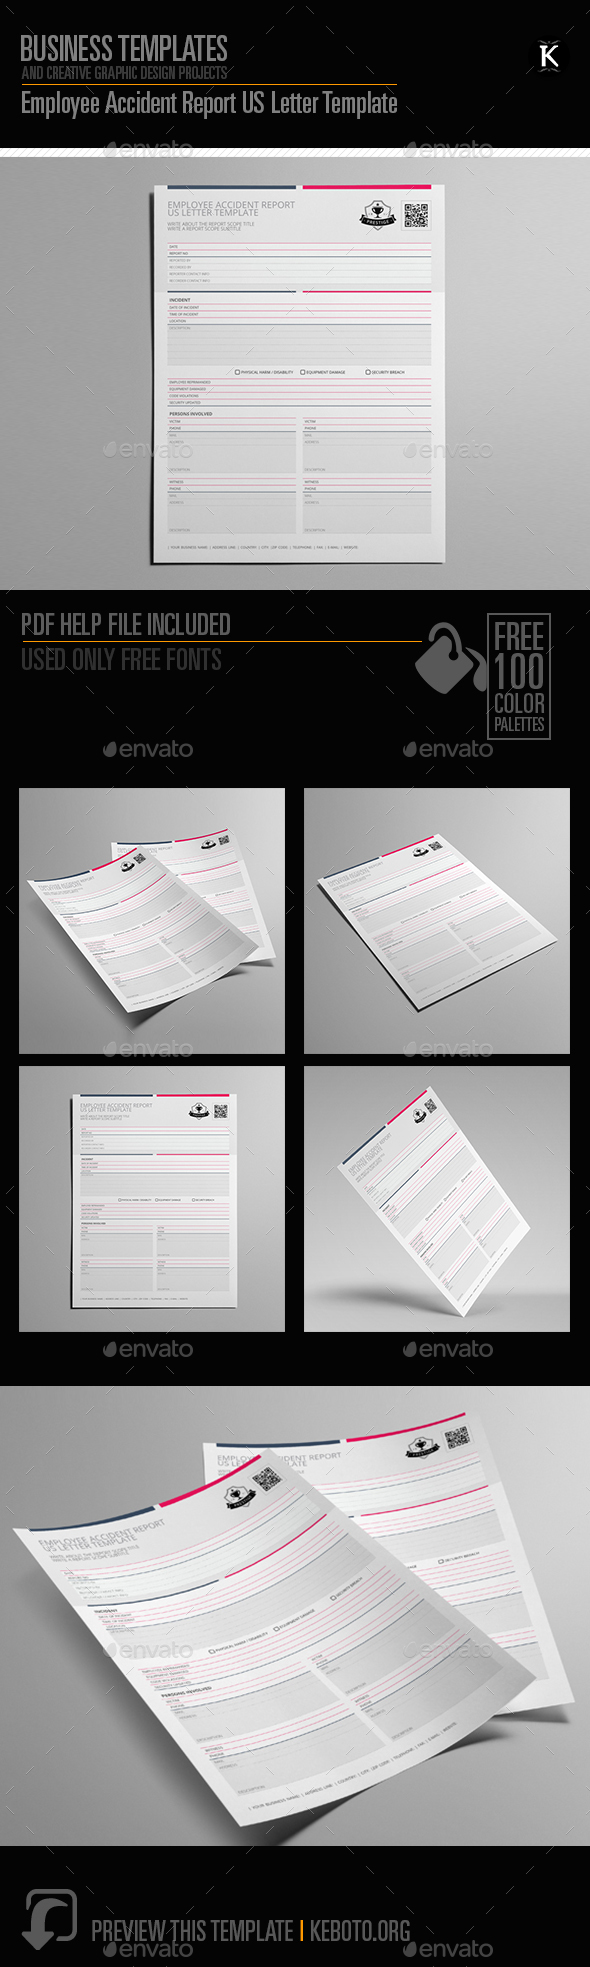 Employee Accident Report US Letter Template by Keboto | GraphicRiver